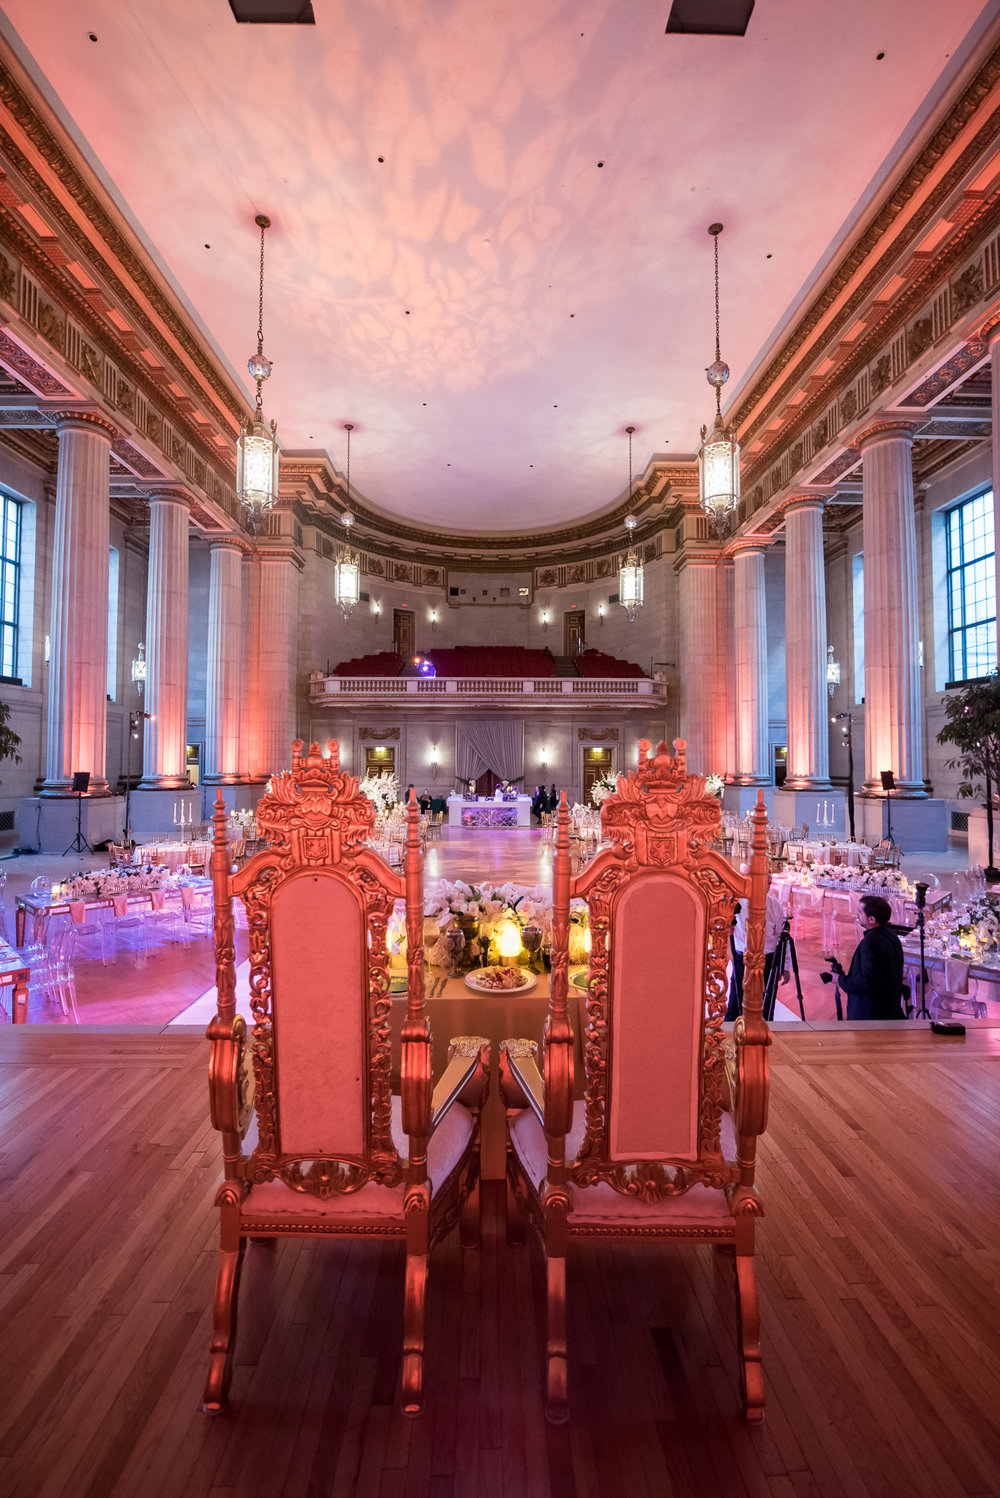 Wedding Chairs Sweetheart Table Andrew Mellon DC Luxury Wedding Planner A Beyoutiful Fete Events and Design